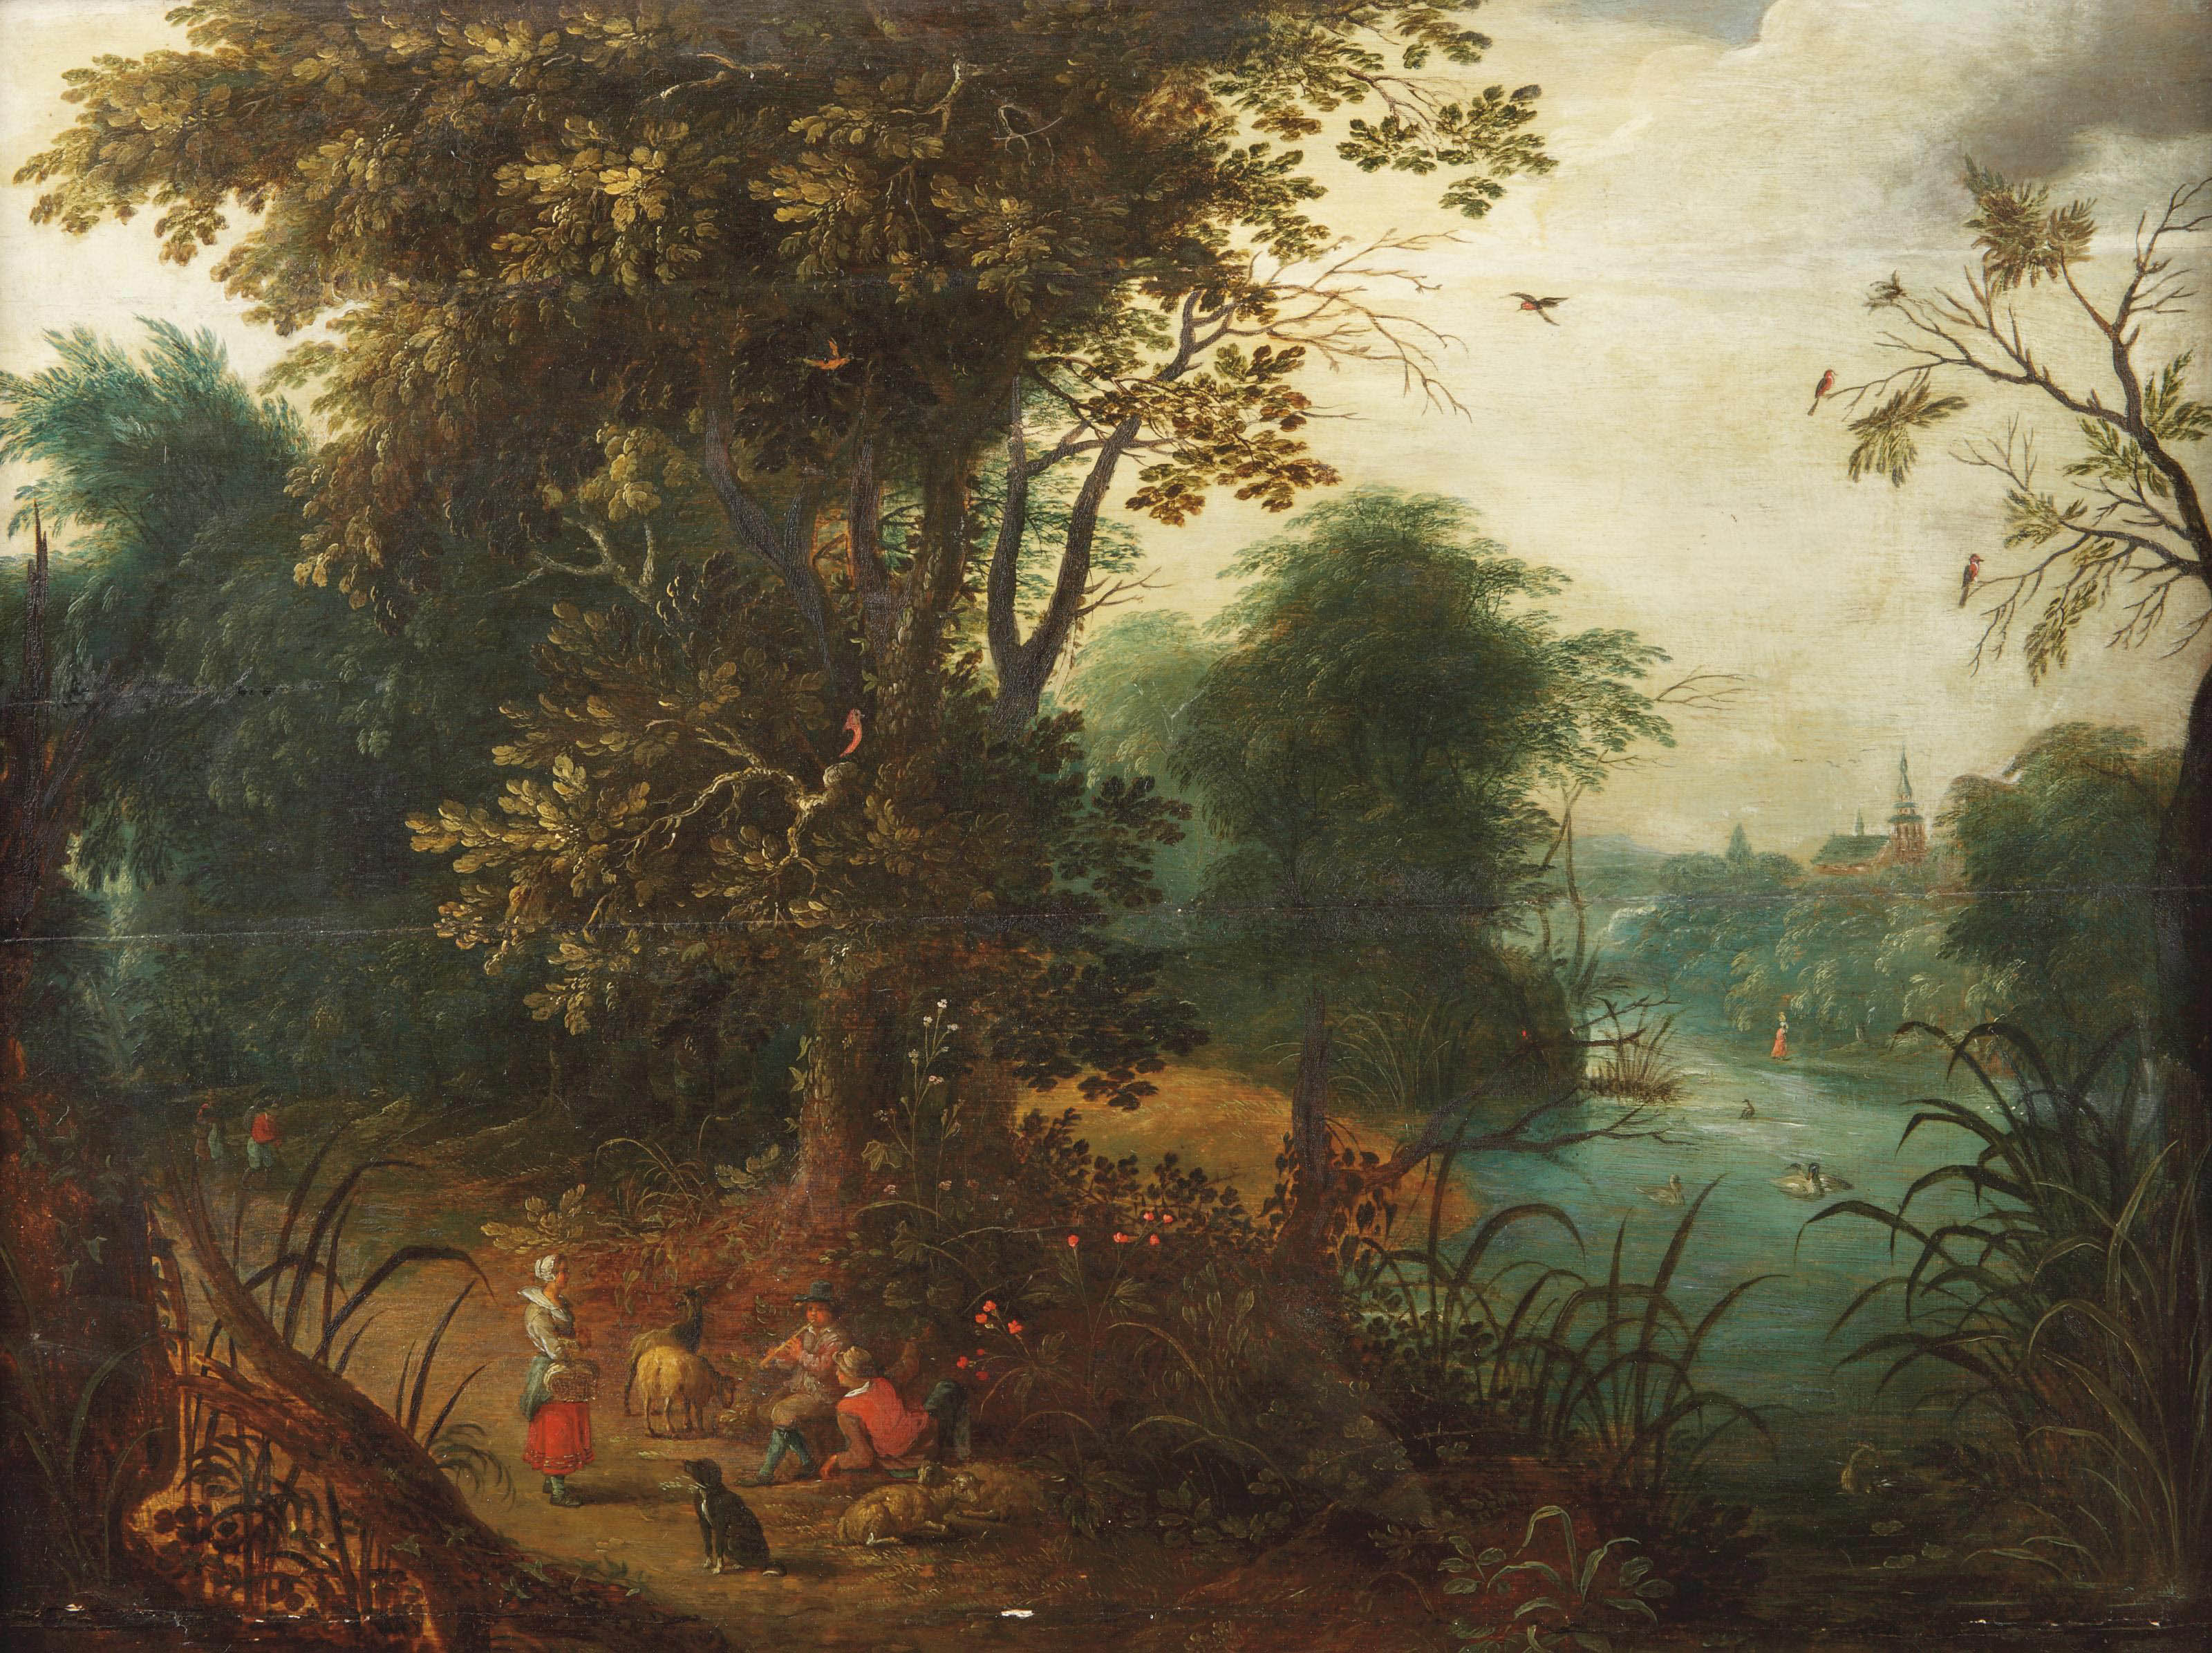 Attributed to Abraham Govaerts (Antwerp 1589-1626)